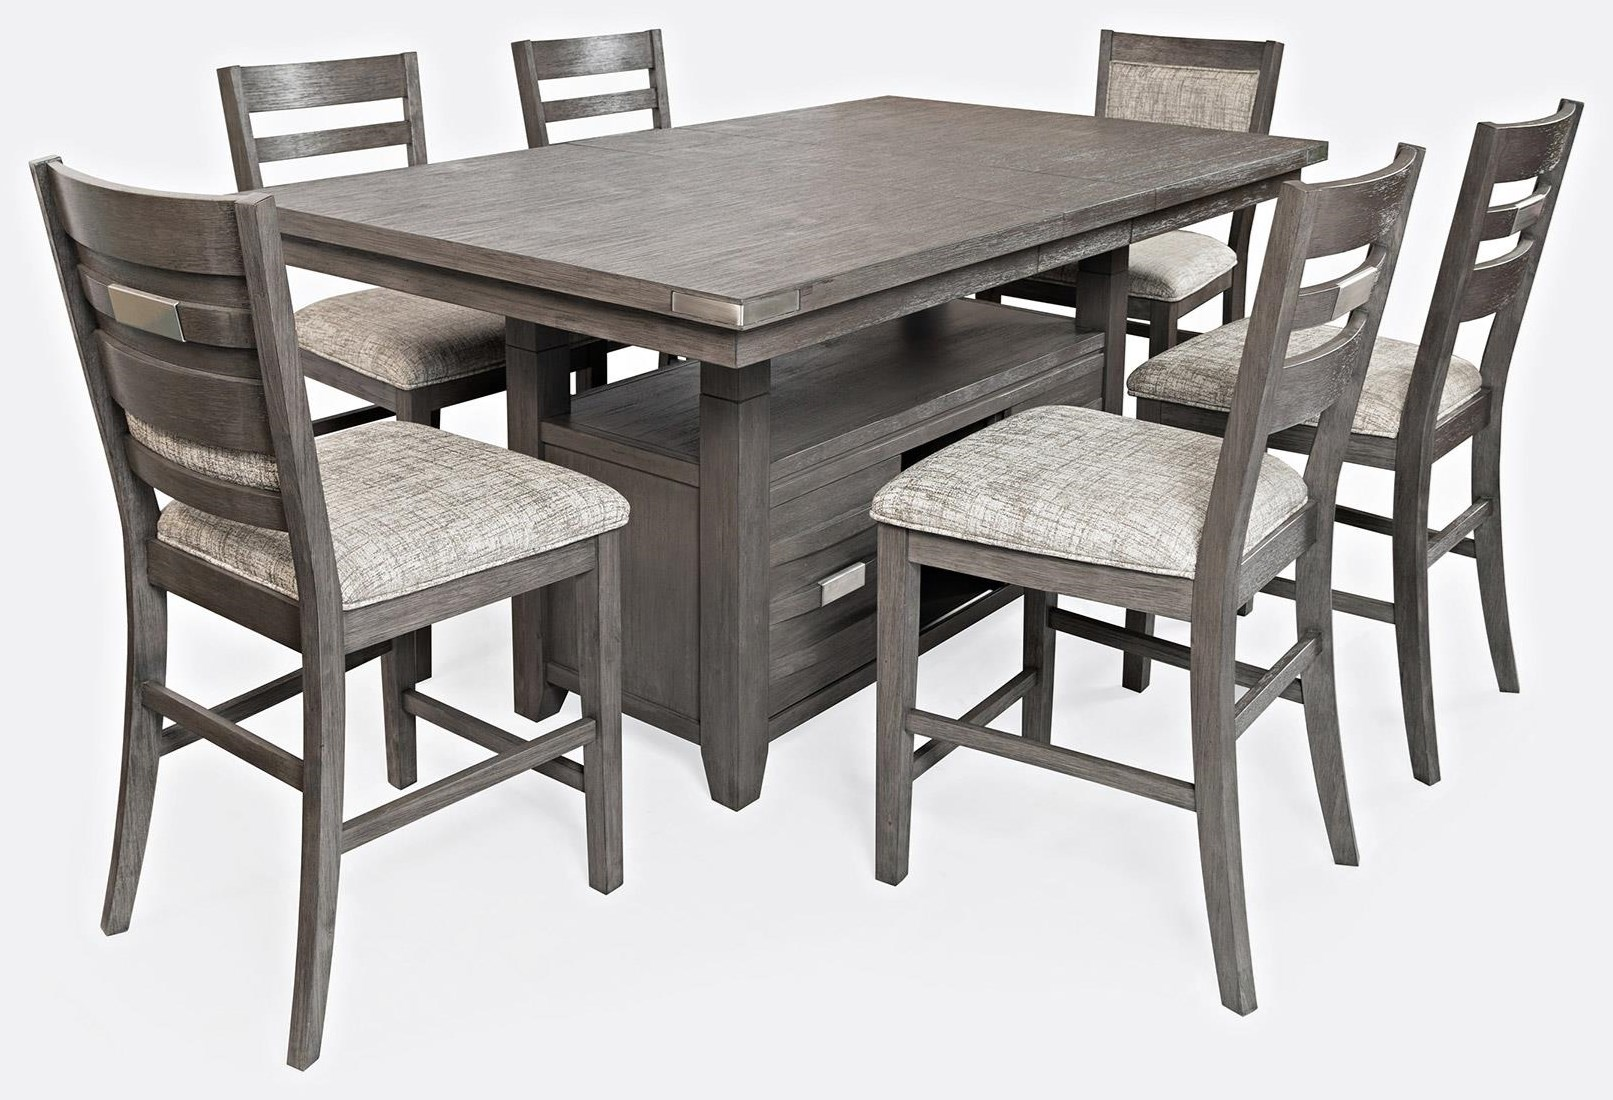 Counter Height Table and 6 Counter Stools